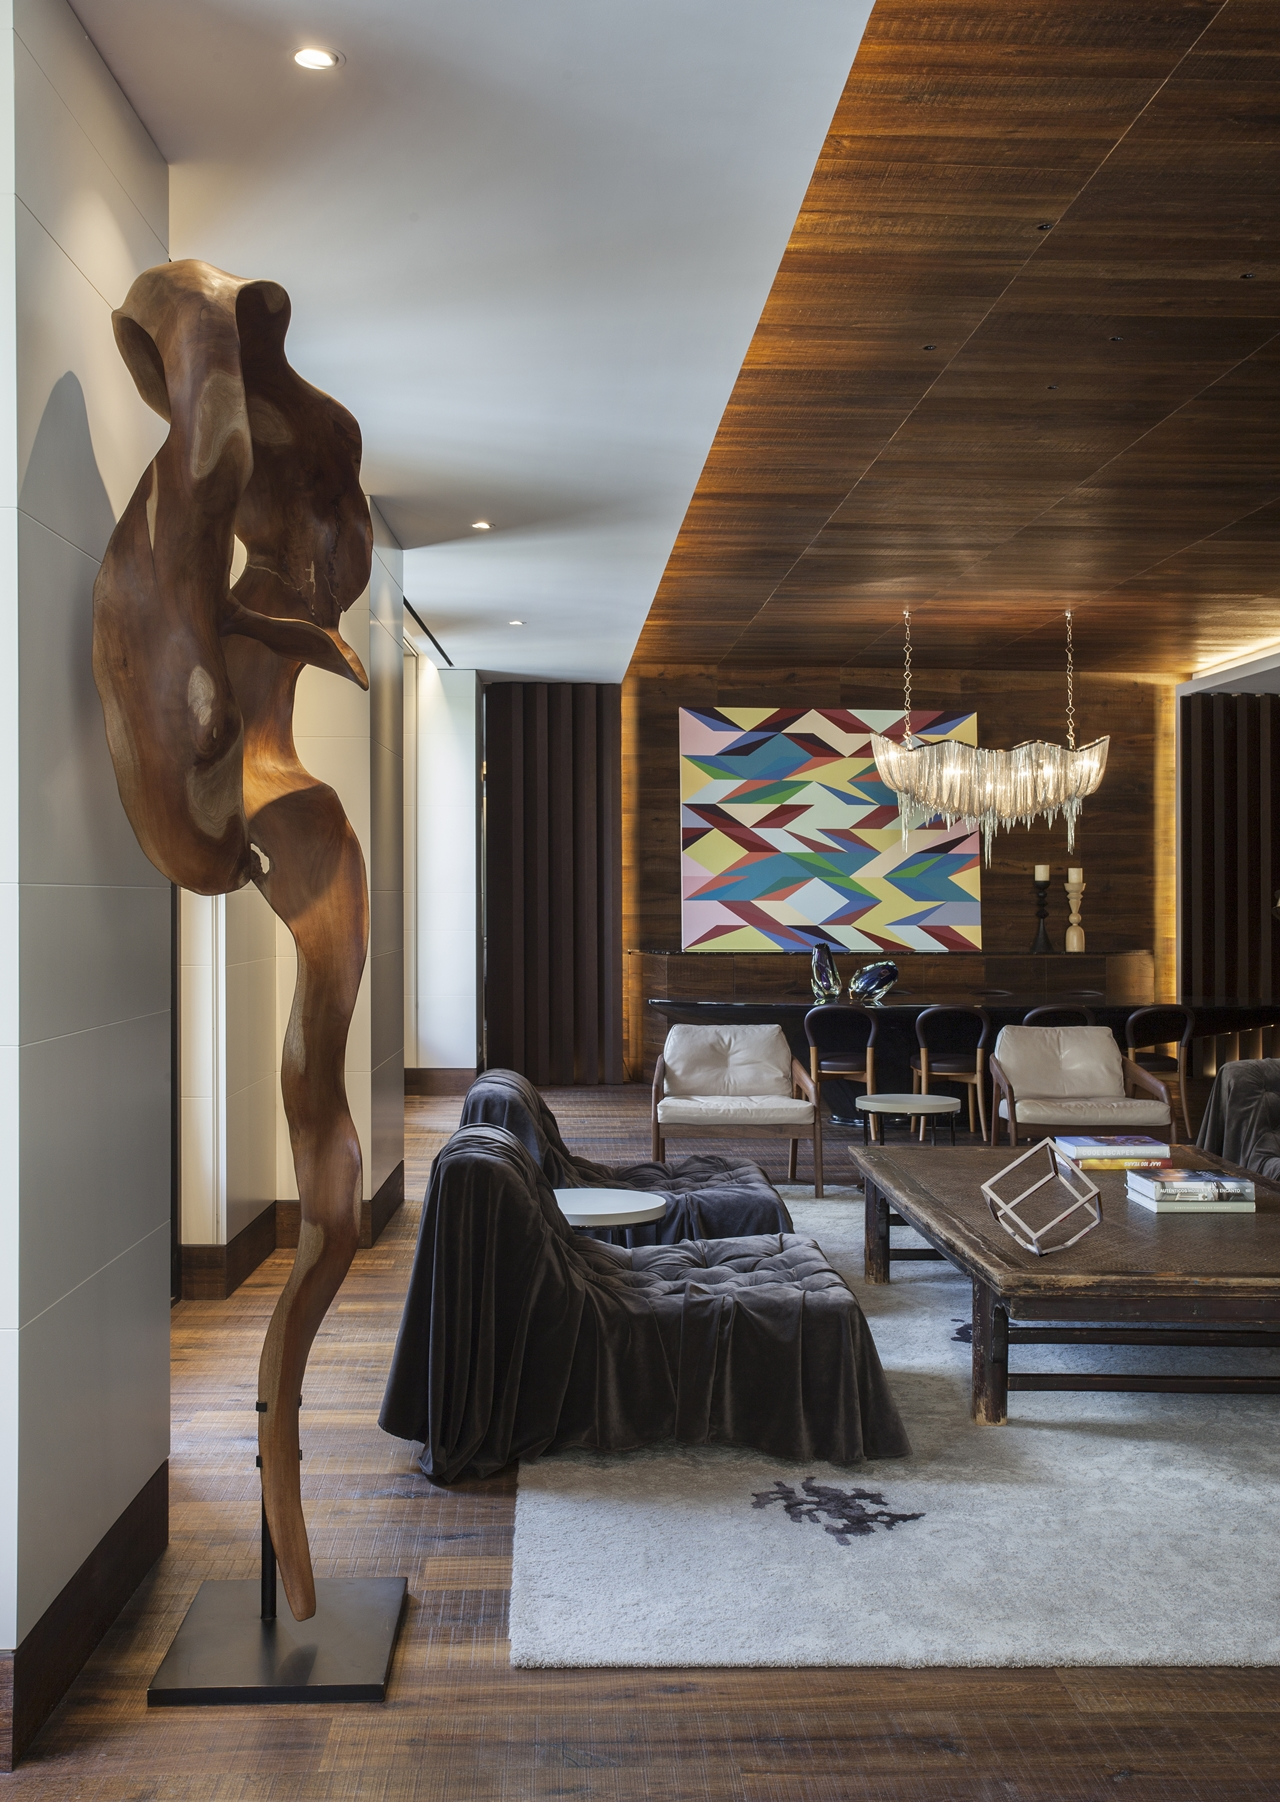 Wooden sculpture in interior design on Barcelona apartment by ARRCC